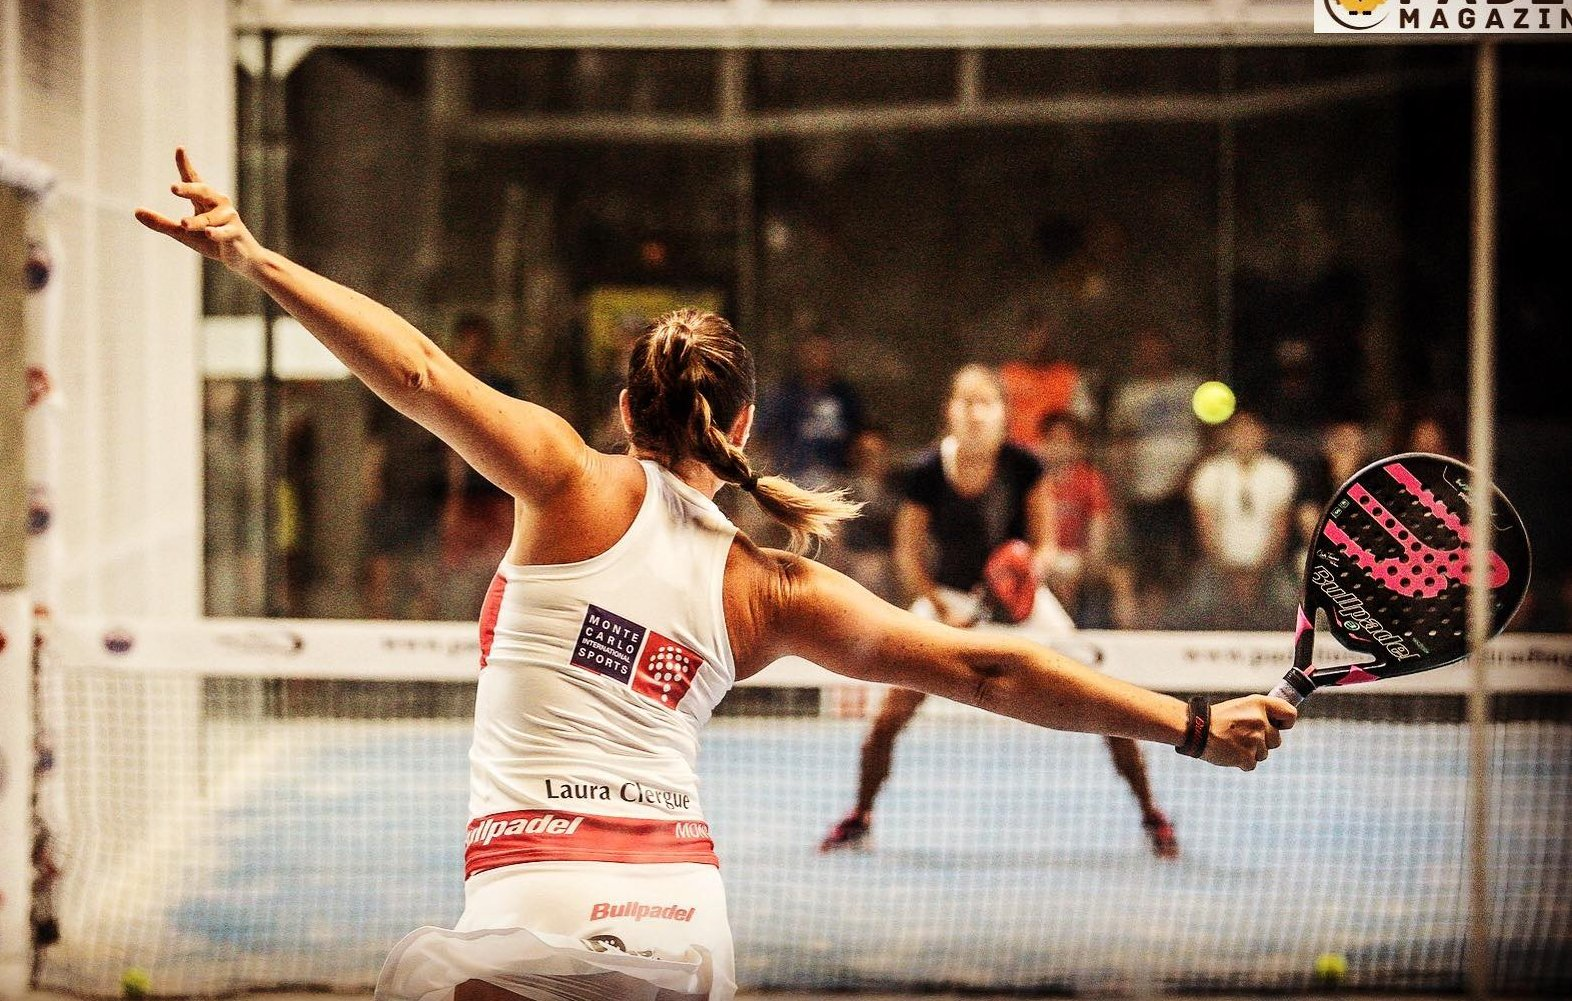 Laura Clergue : La meilleure progression 2017 au World Padel Tour